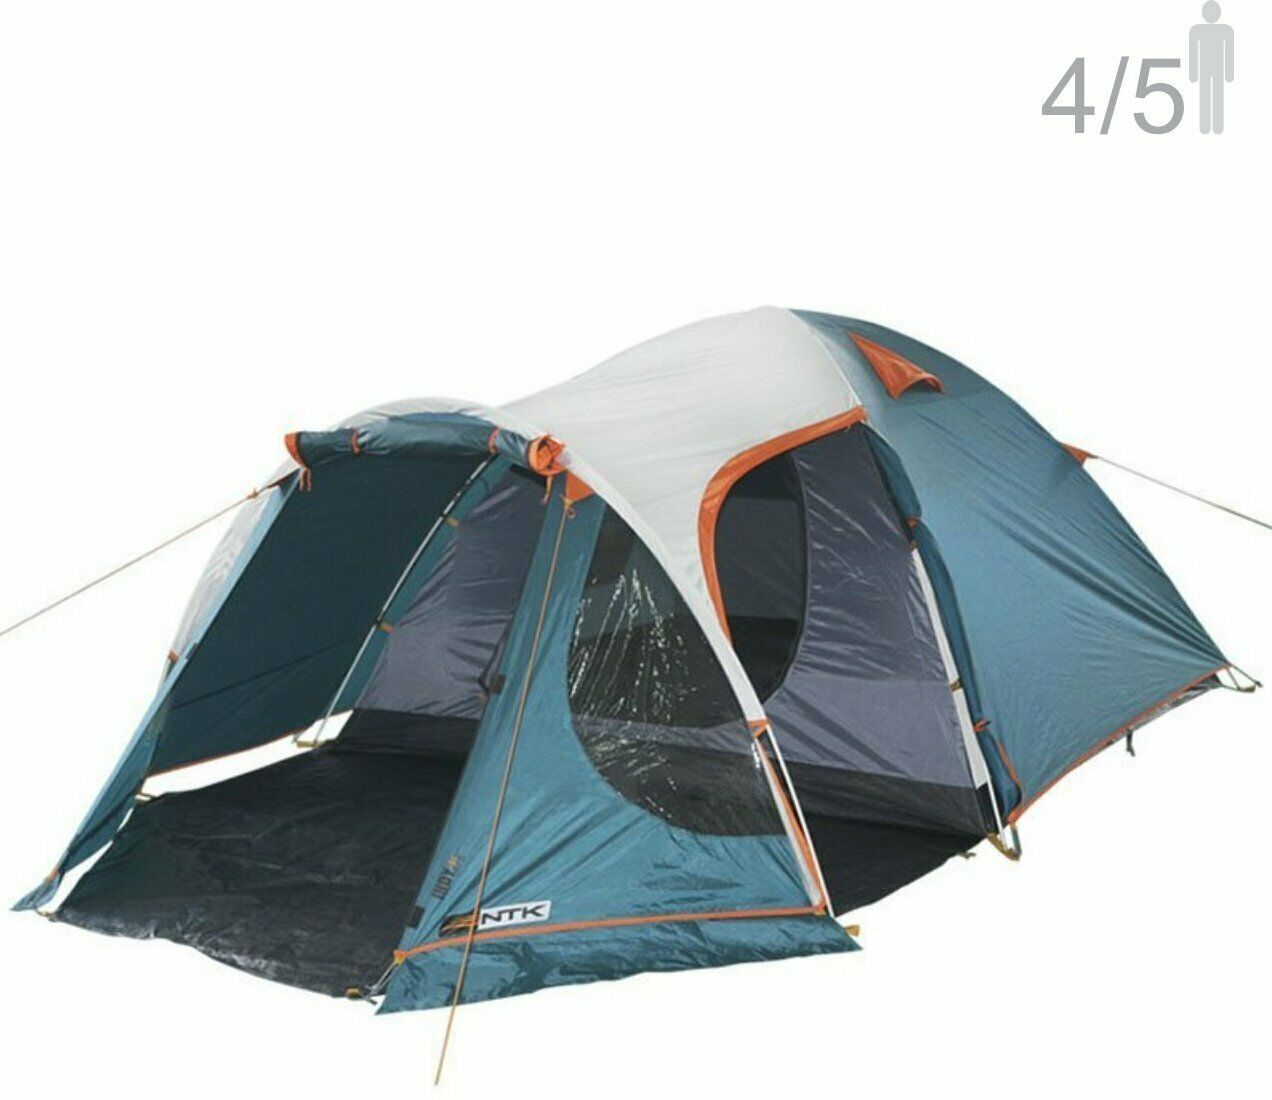 NTK INDY  GT 4 to 5 Person 12.2 by 8 Foot Outdoor Dome Family Camping Tent  outlet factory shop